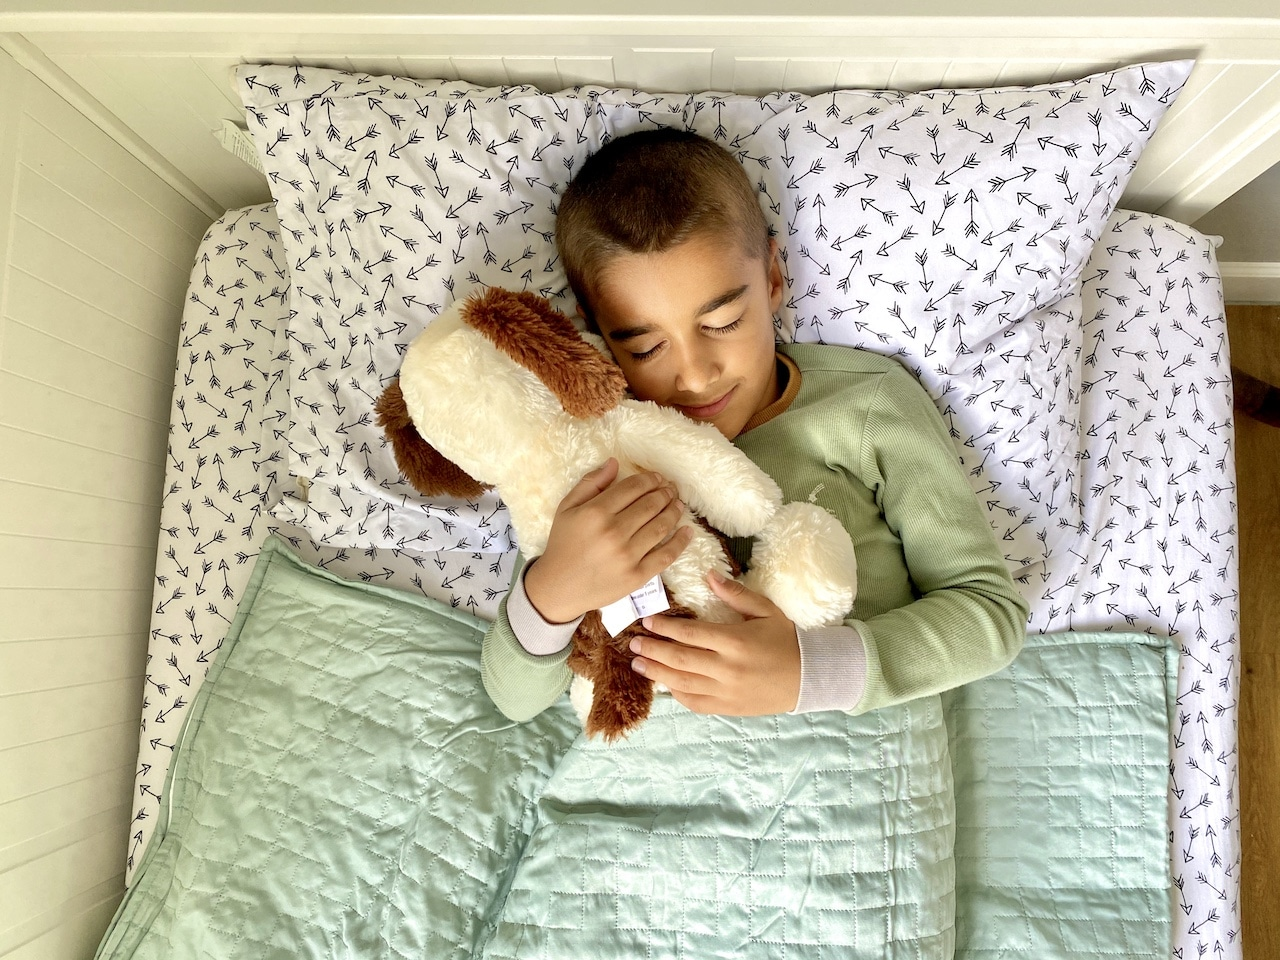 Gravity Kids Weighted Blanket comes with a weighted plush